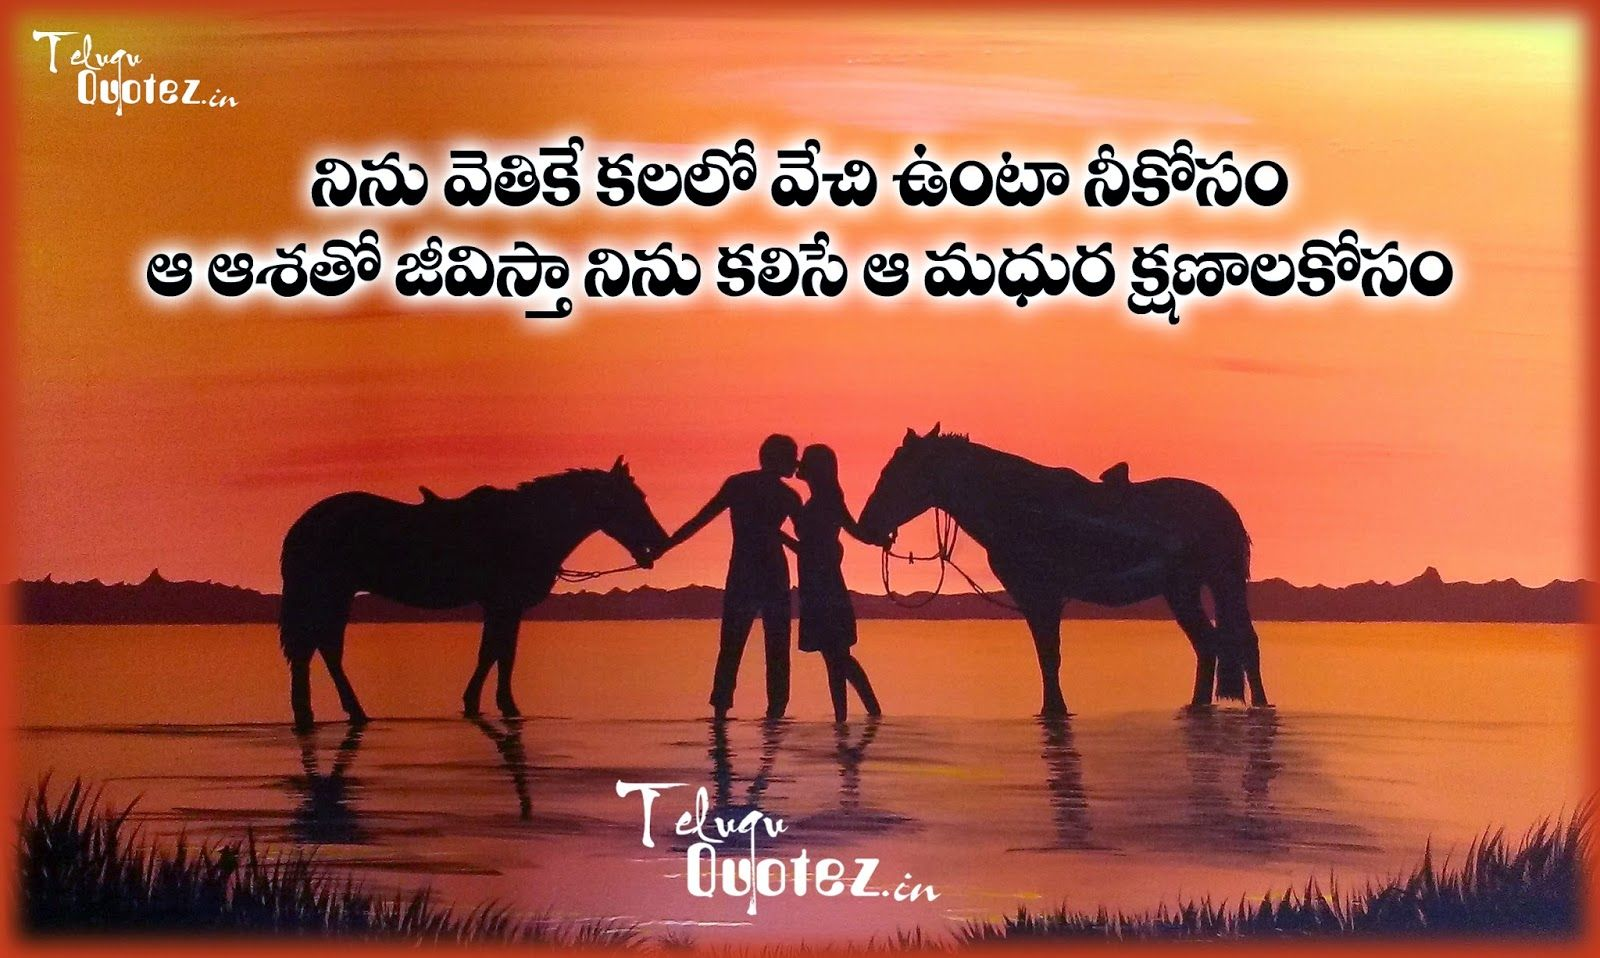 Meaningful Life Quotes Telugu Quotes On Lovemotivational Telugu Quotes About Love And